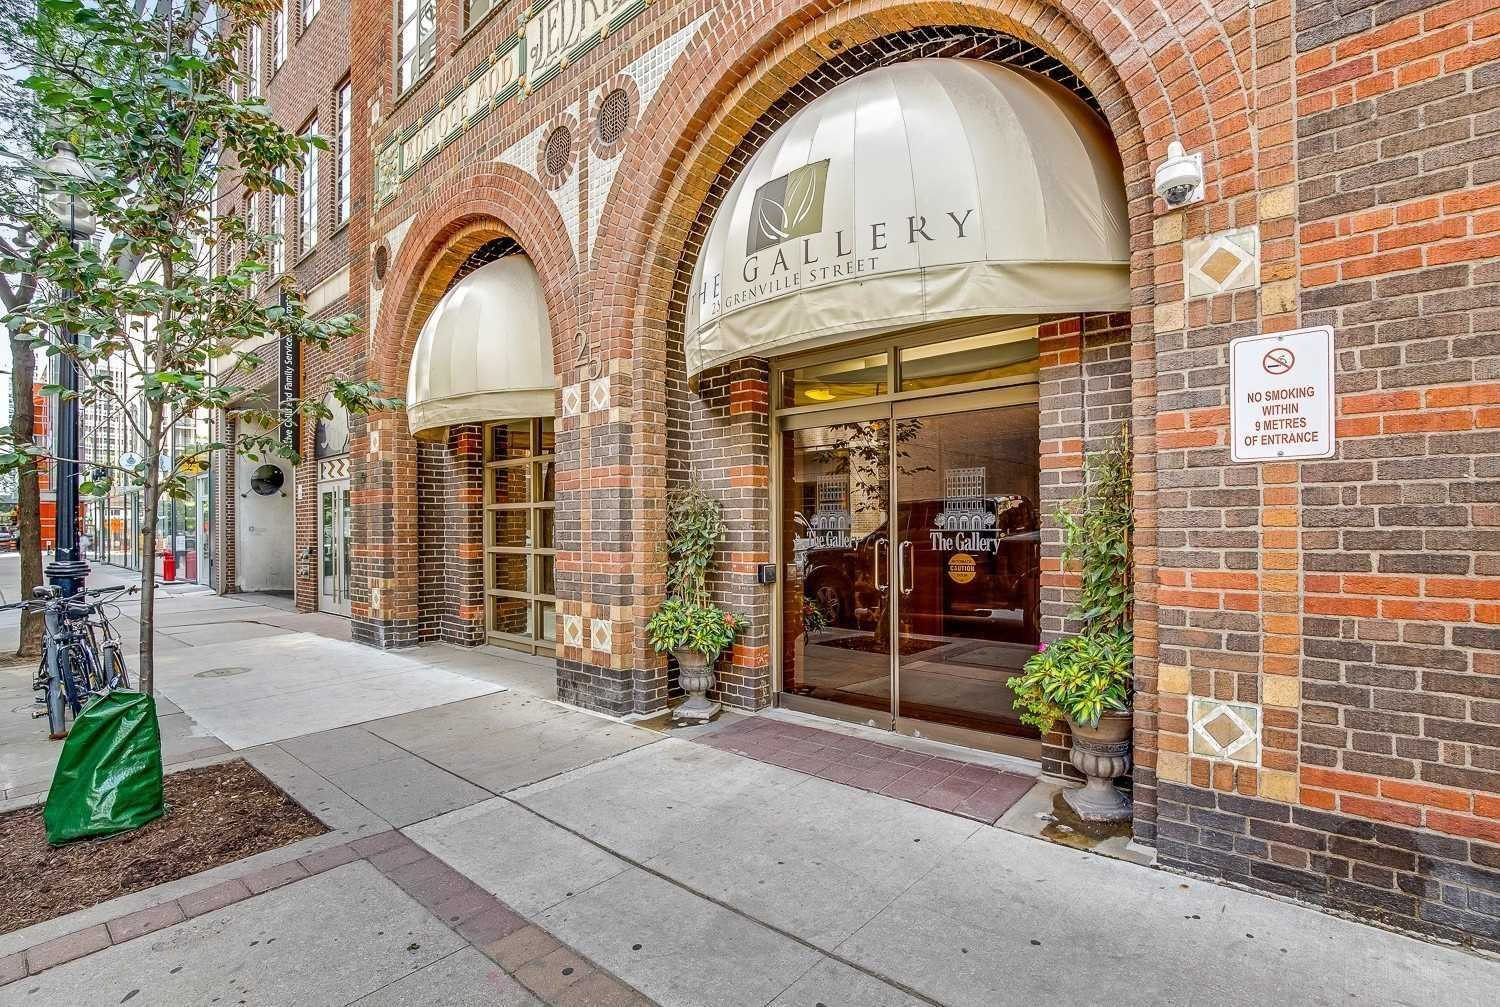 The Gallery 25 Grenville St Toronto exterior entrance angle view